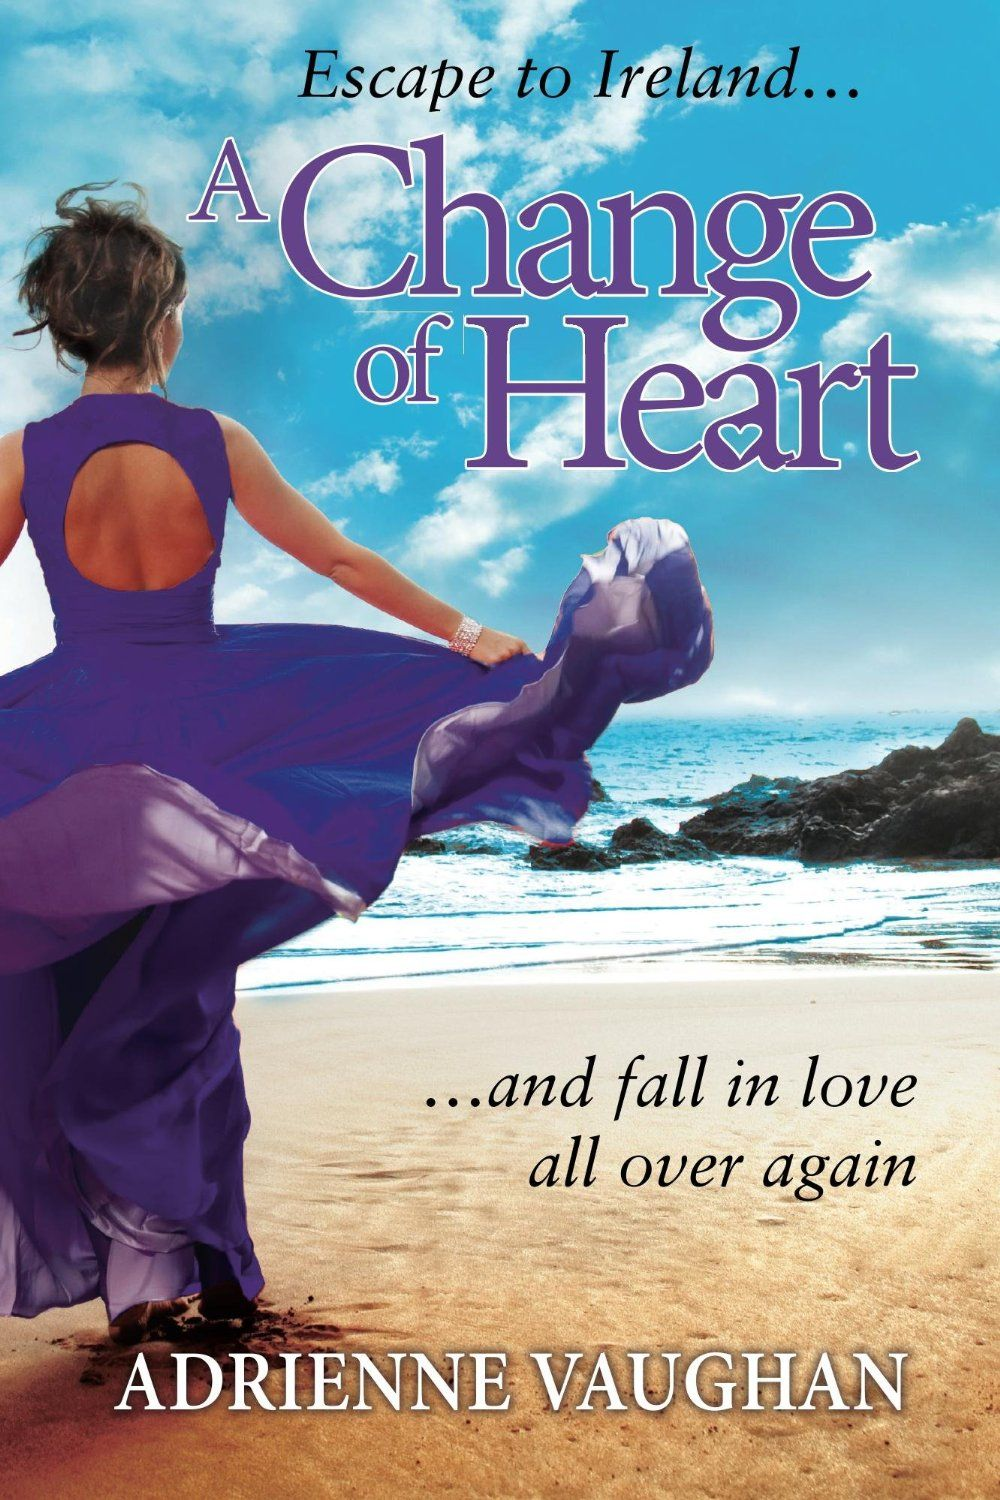 0 99 romance kindle book sale more for less online http www